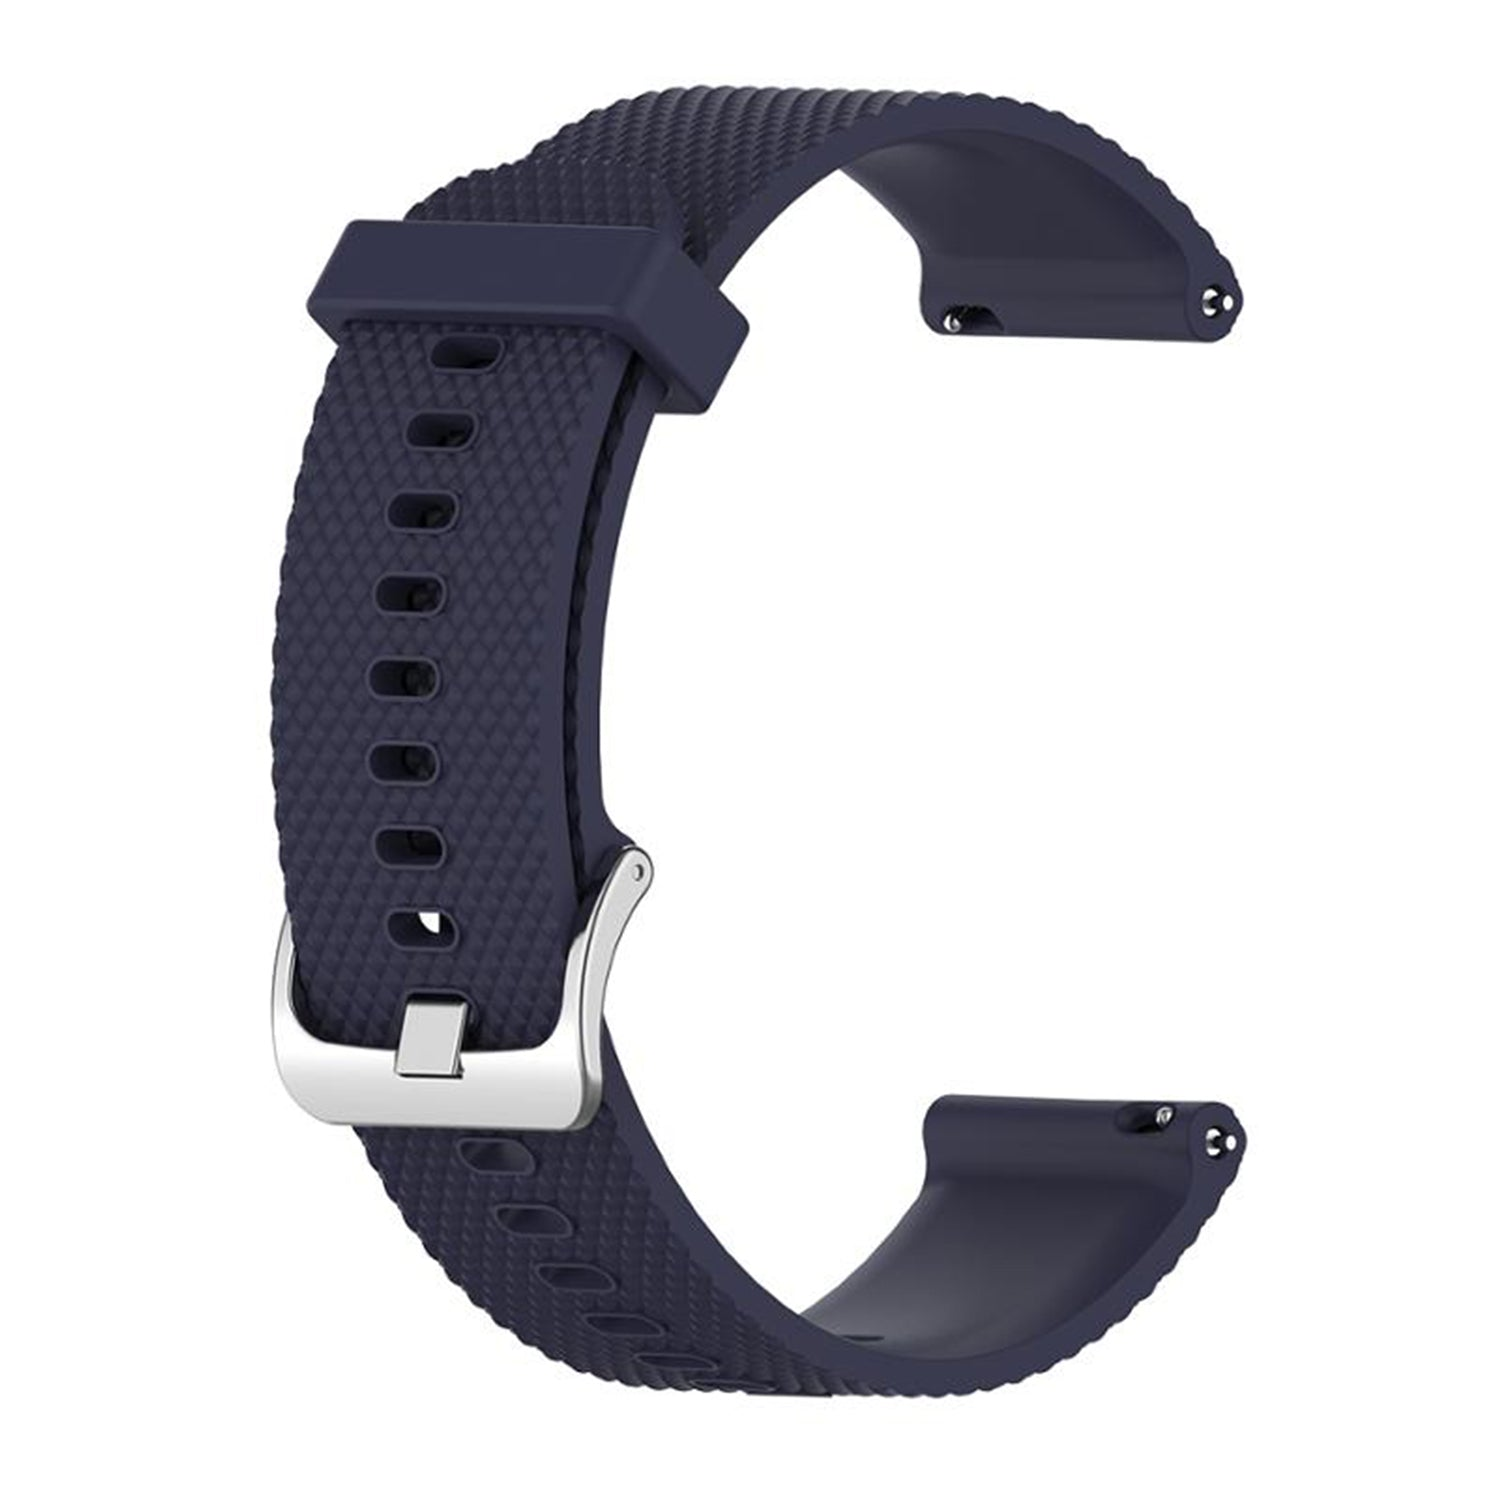 22mm Silicone Band Navy - Samsung, Garmin